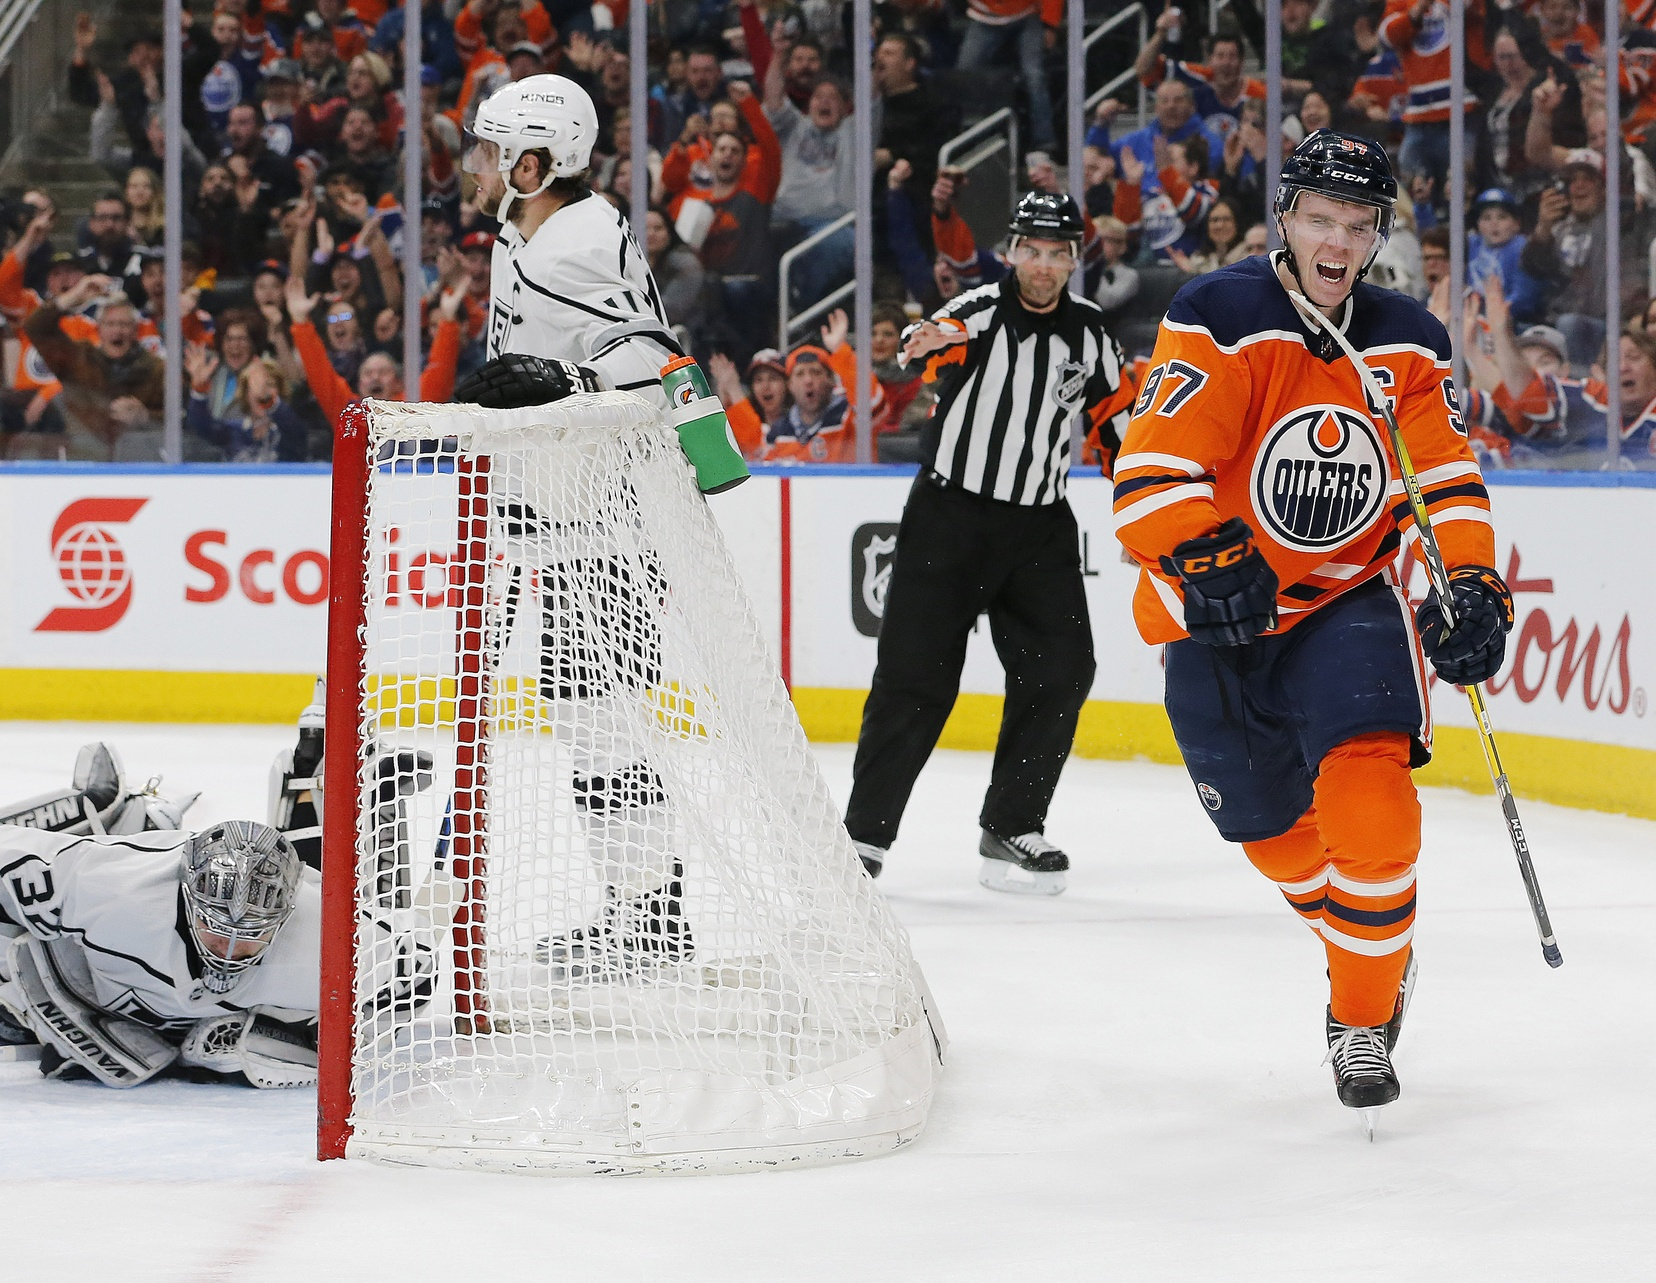 Connor-mcdavid-oilers-scores-on-jonathan-quick-kings-while-anze-kopitar-stands-by